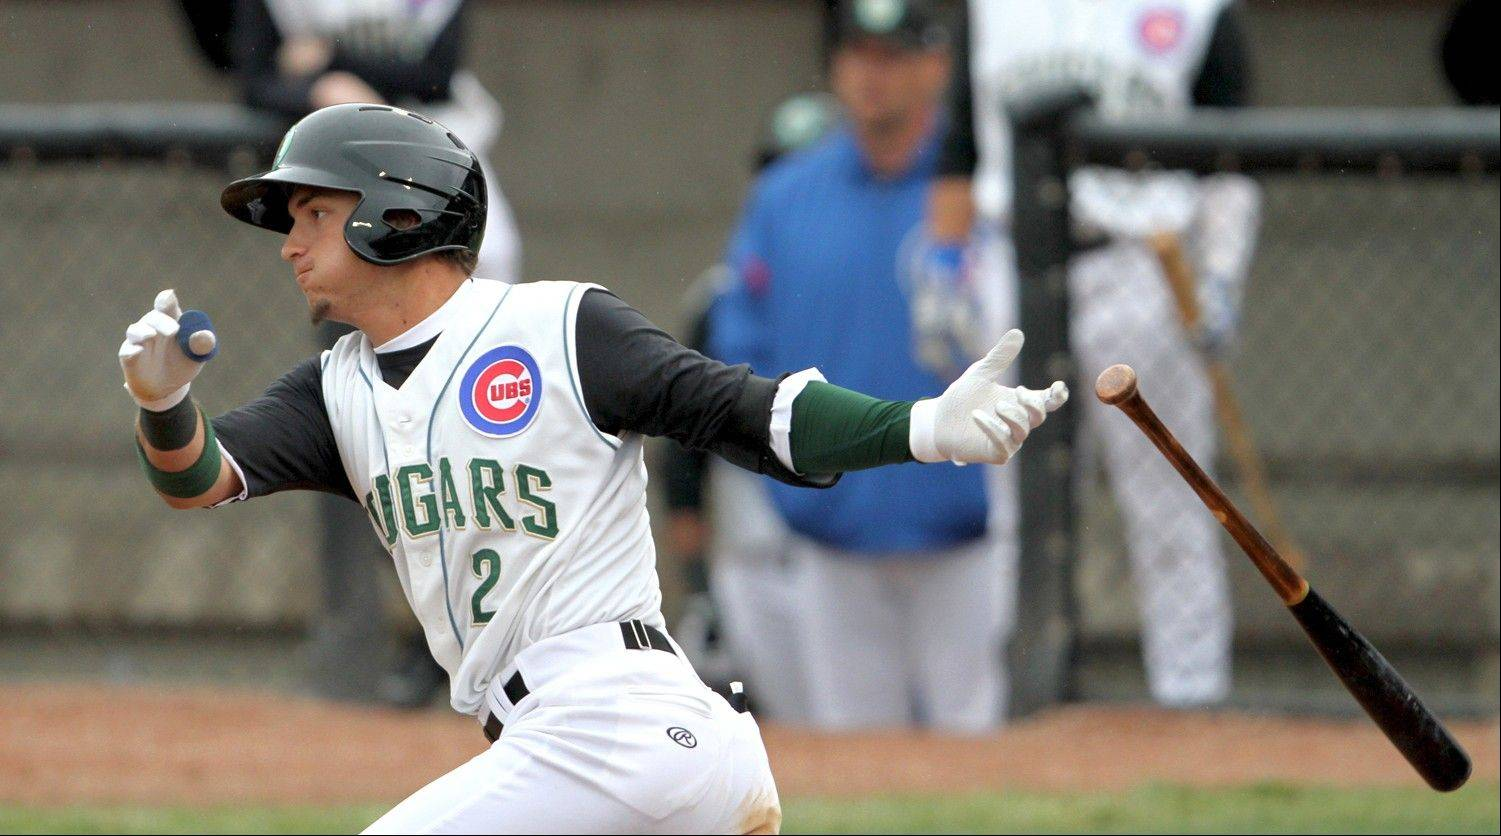 Cubs prospect Albert Almora of the Kane County Cougars has had a terrific start in Geneva with the Class A club, batting .455 through his first 11 games.